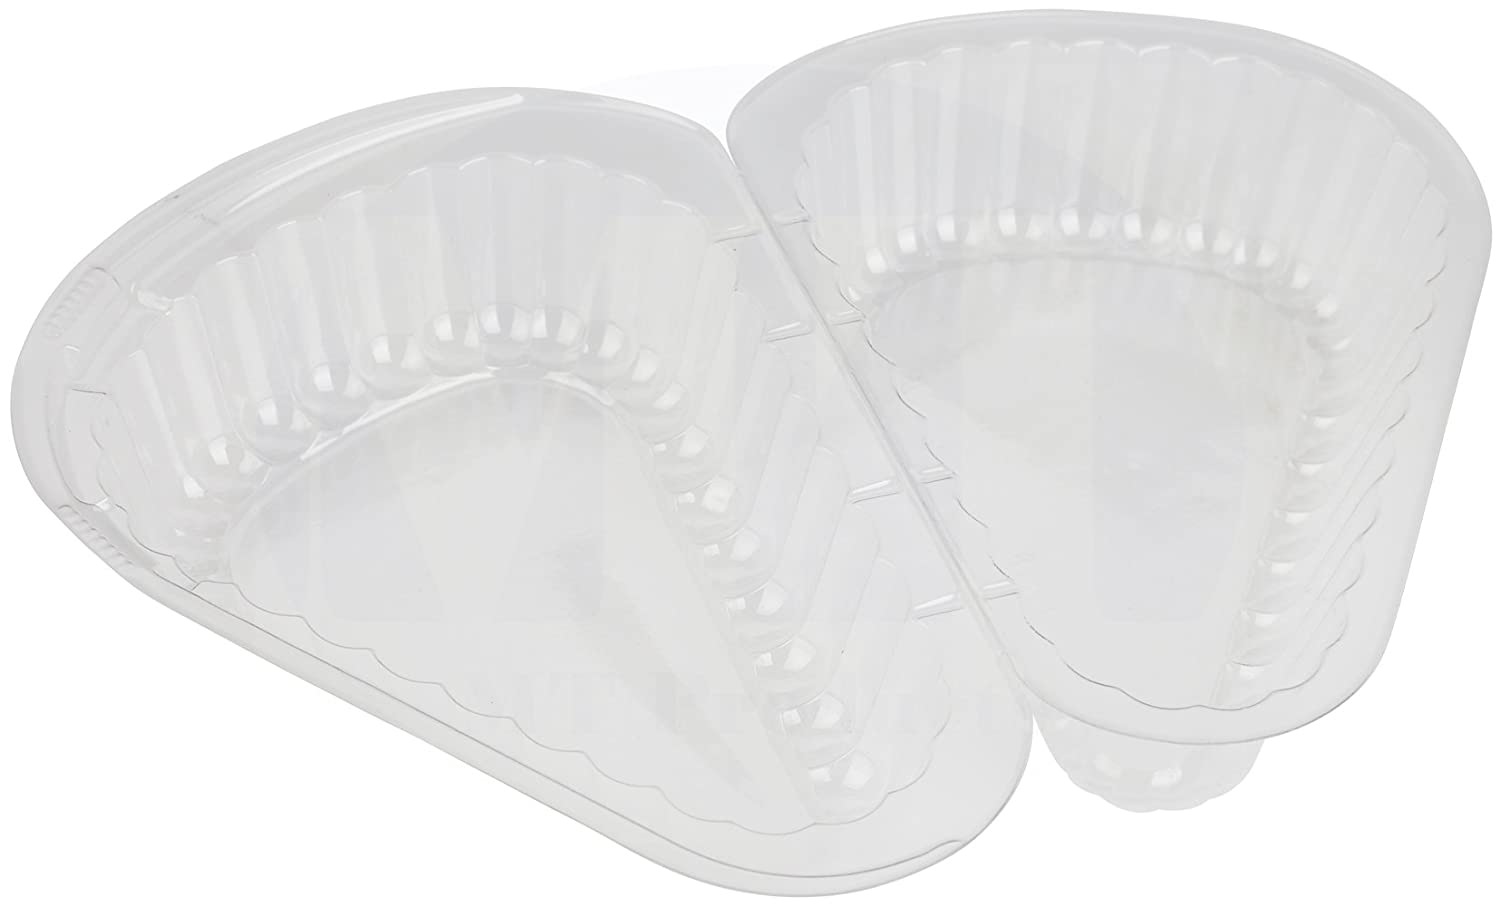 Cheesecake //Cake Slice Container by MT Products Pack of 20 Hinged Small Plastic Pie